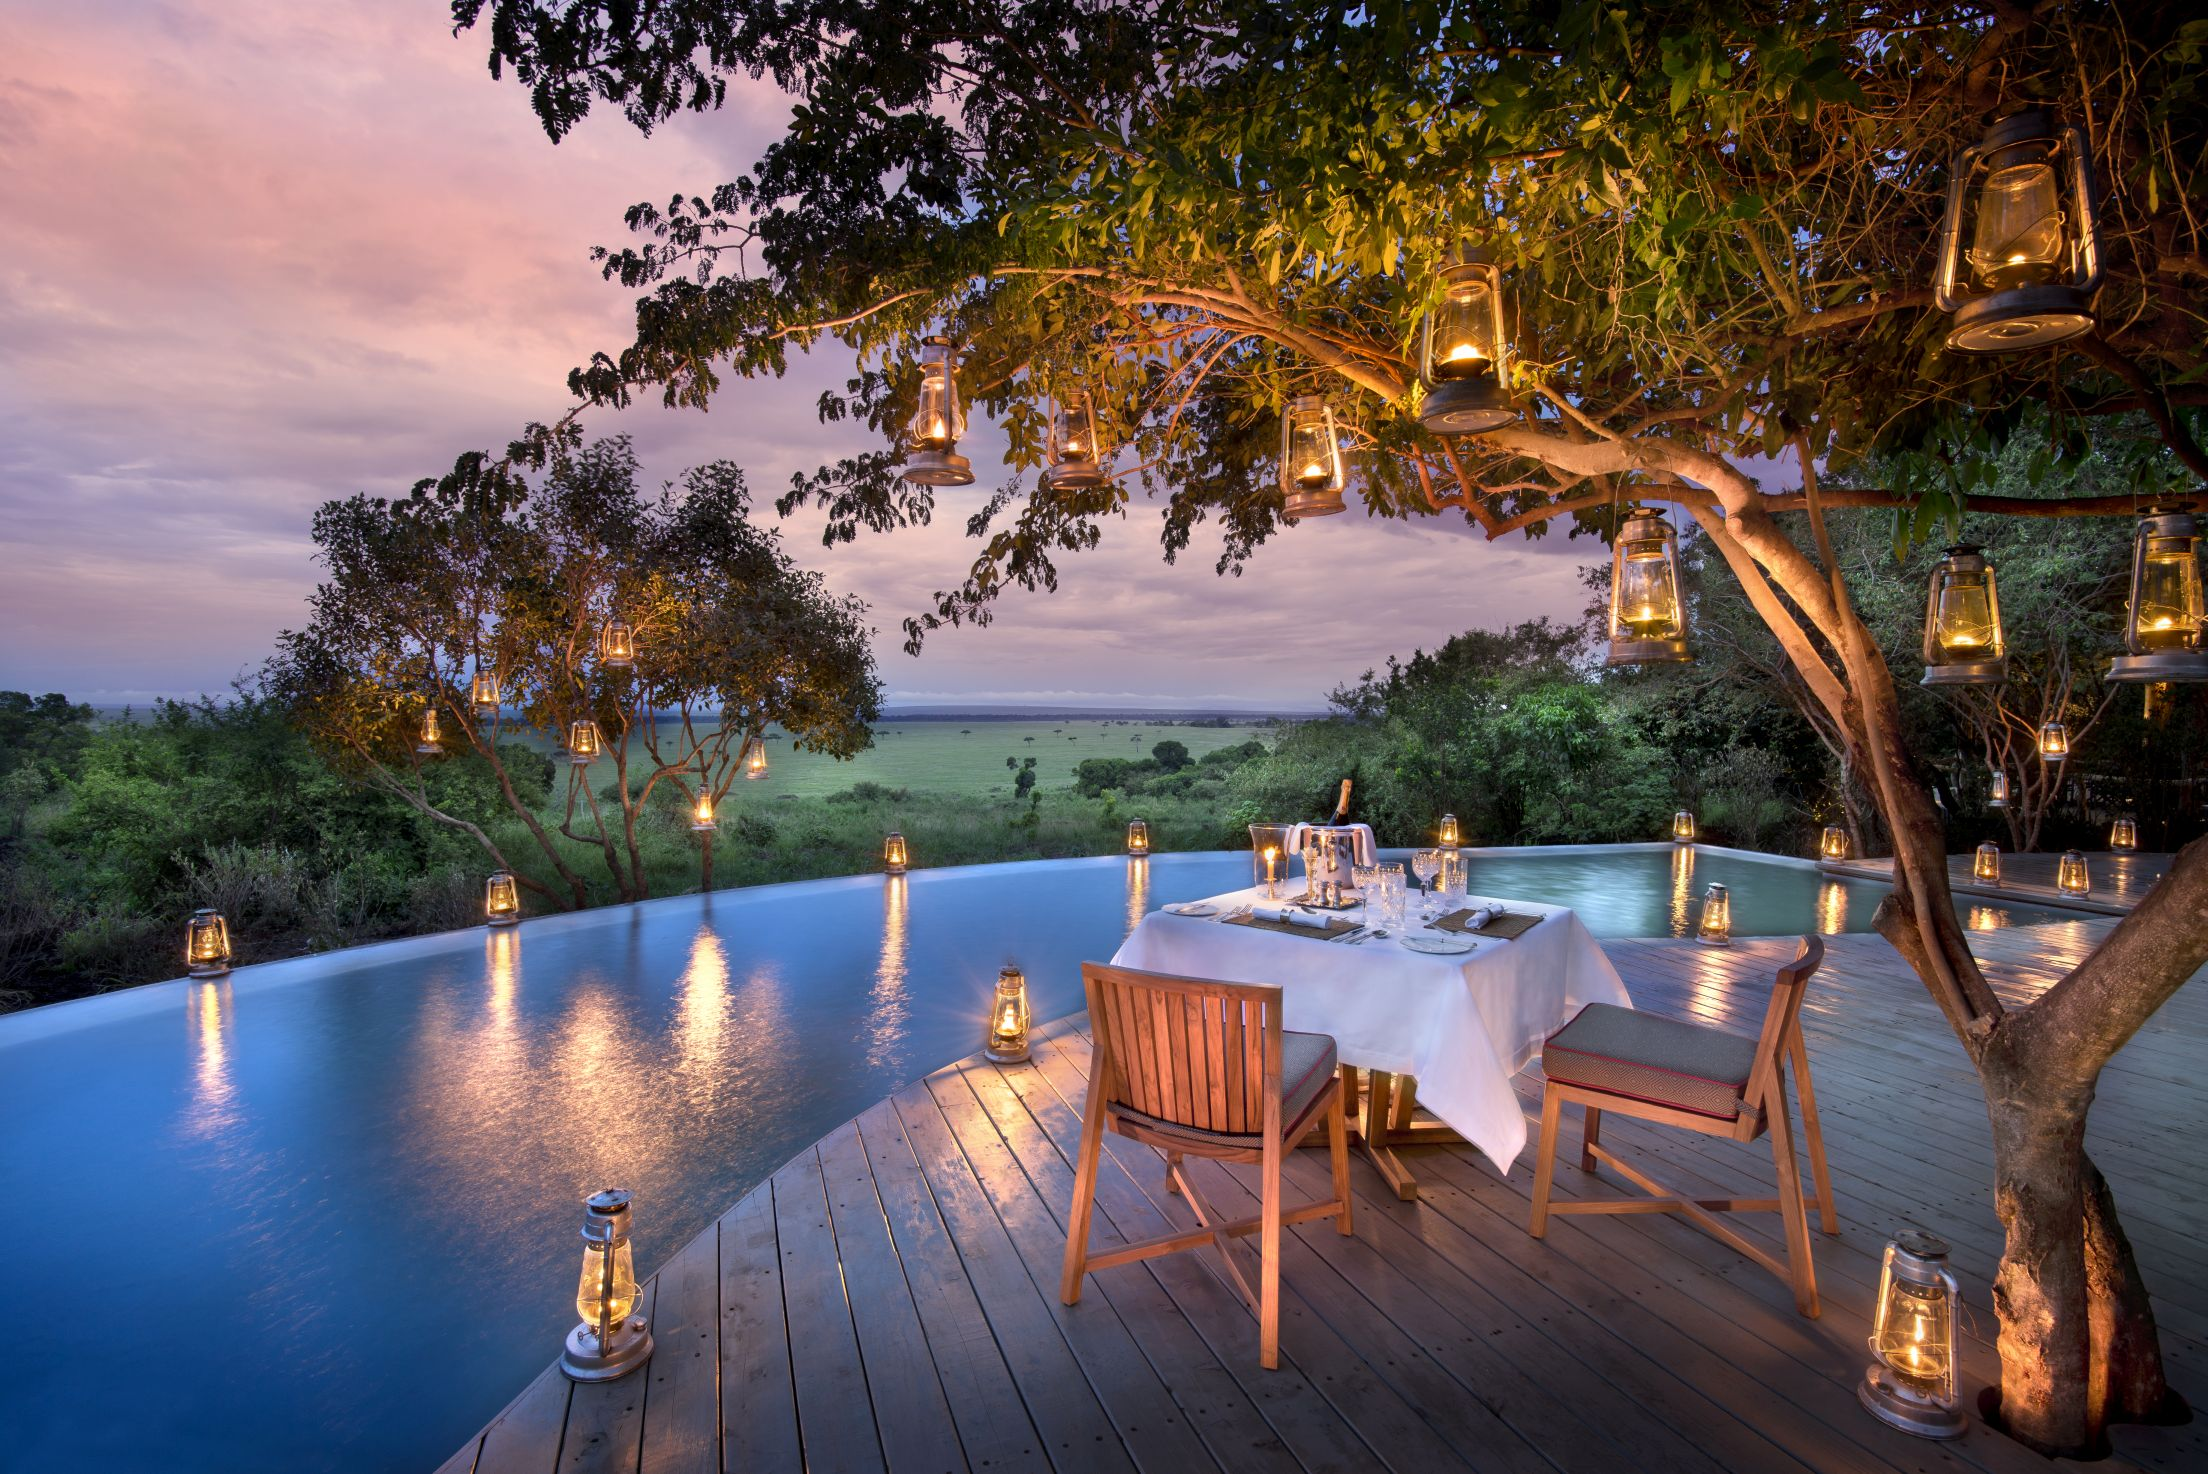 Kenya's iconic andBeyond Bateleur Camp, located in the Masai Mara, has reopened after an extensive and luxurious reinvention.